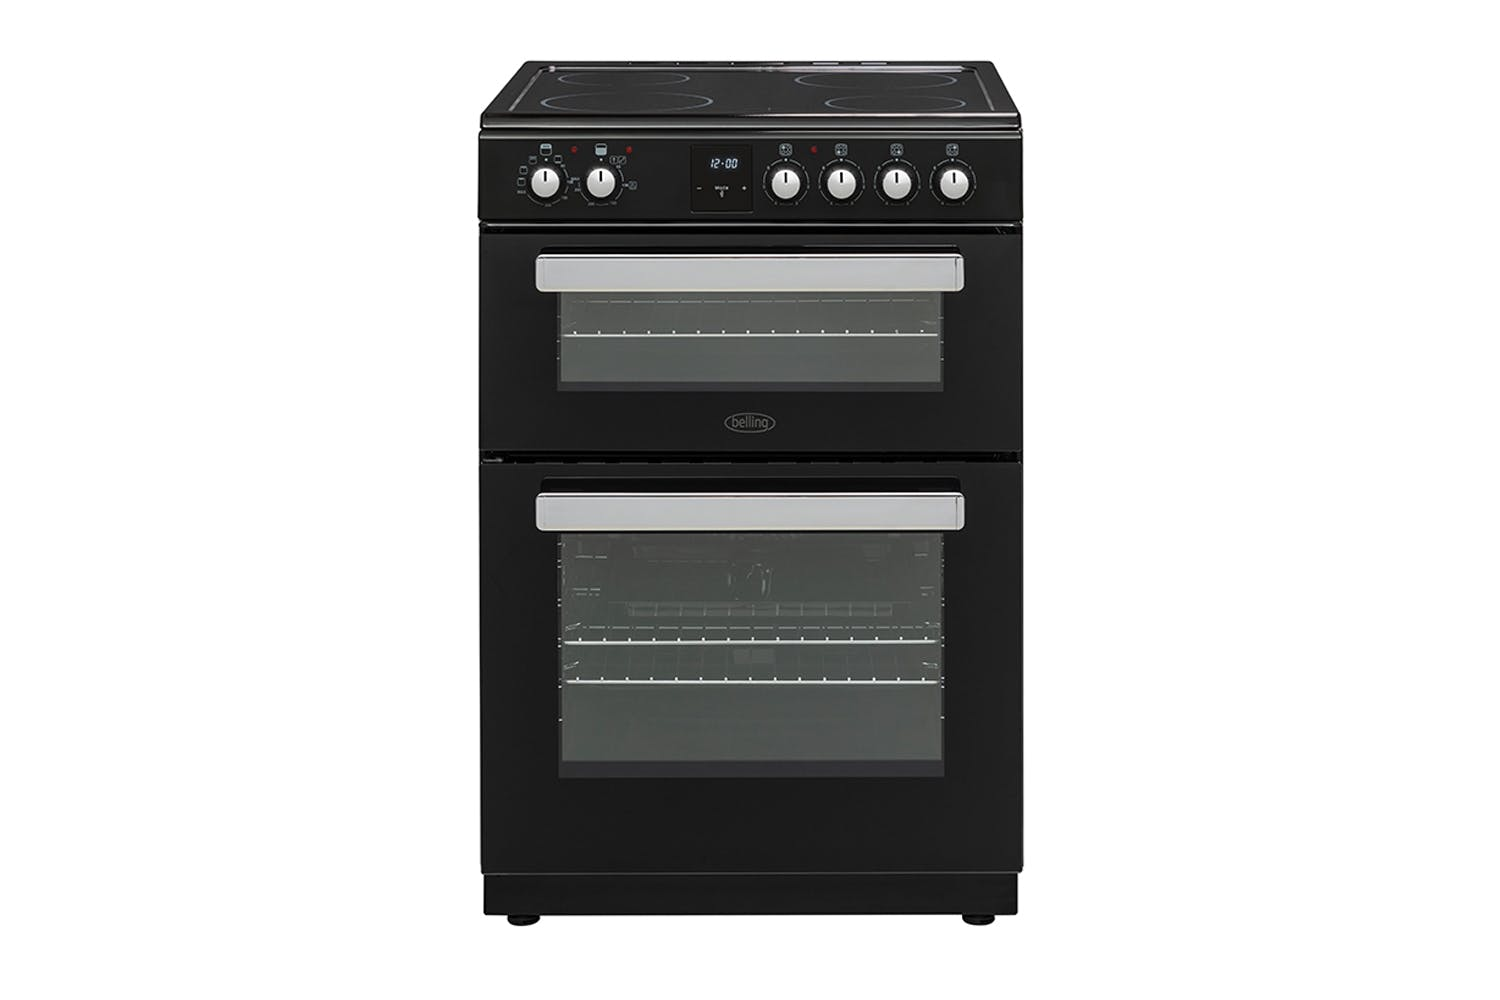 electric oven price in Bangladesh